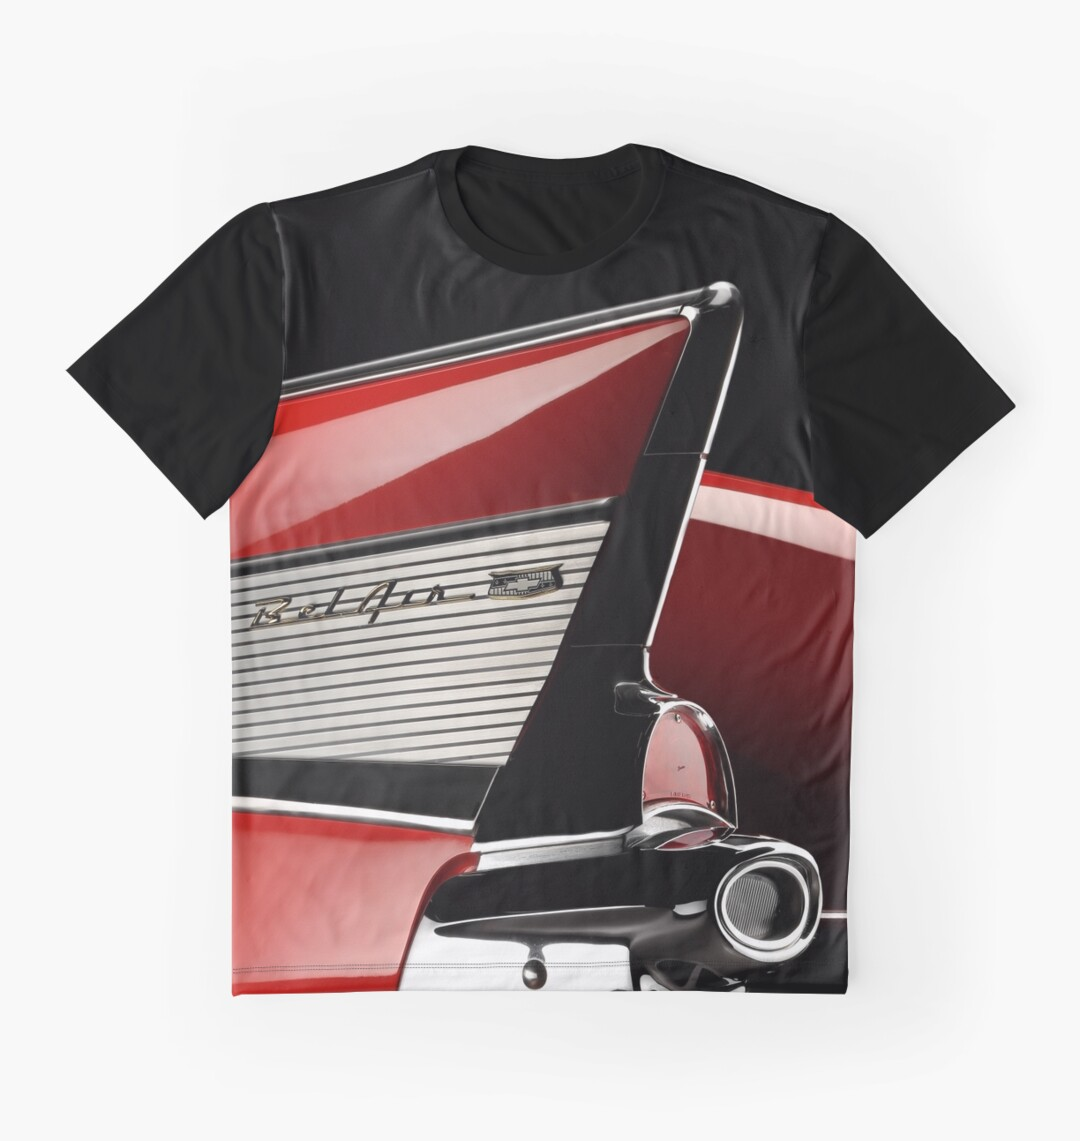 1957 chevrolet bel air graphic t shirts by. Black Bedroom Furniture Sets. Home Design Ideas